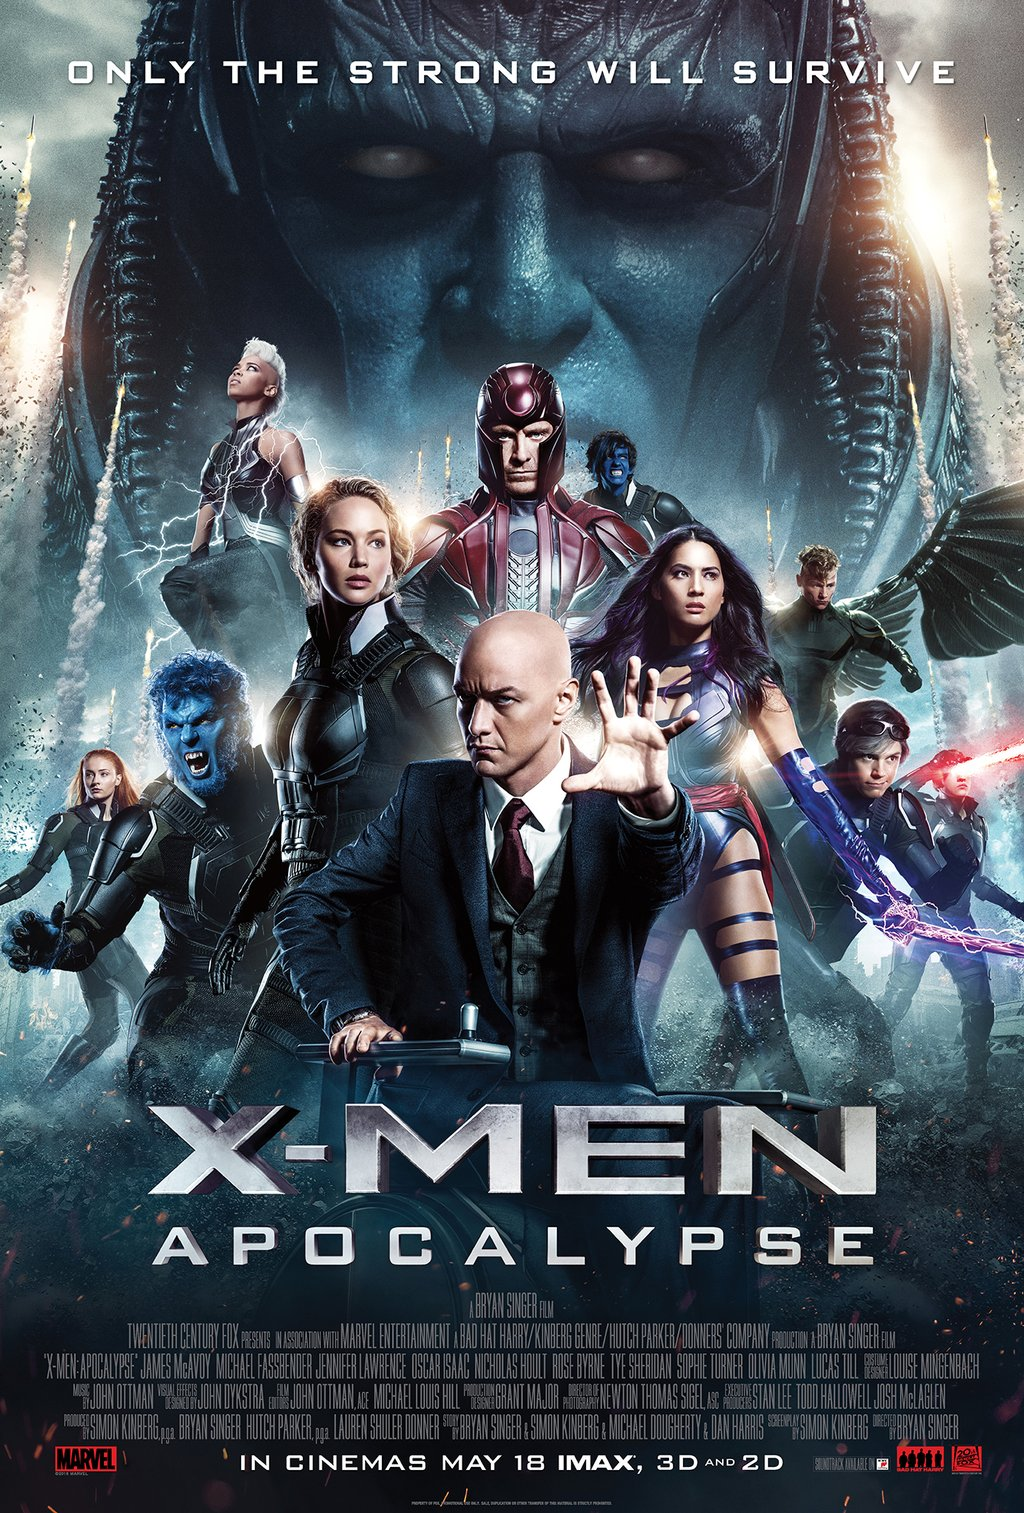 x-men apocalipse poster